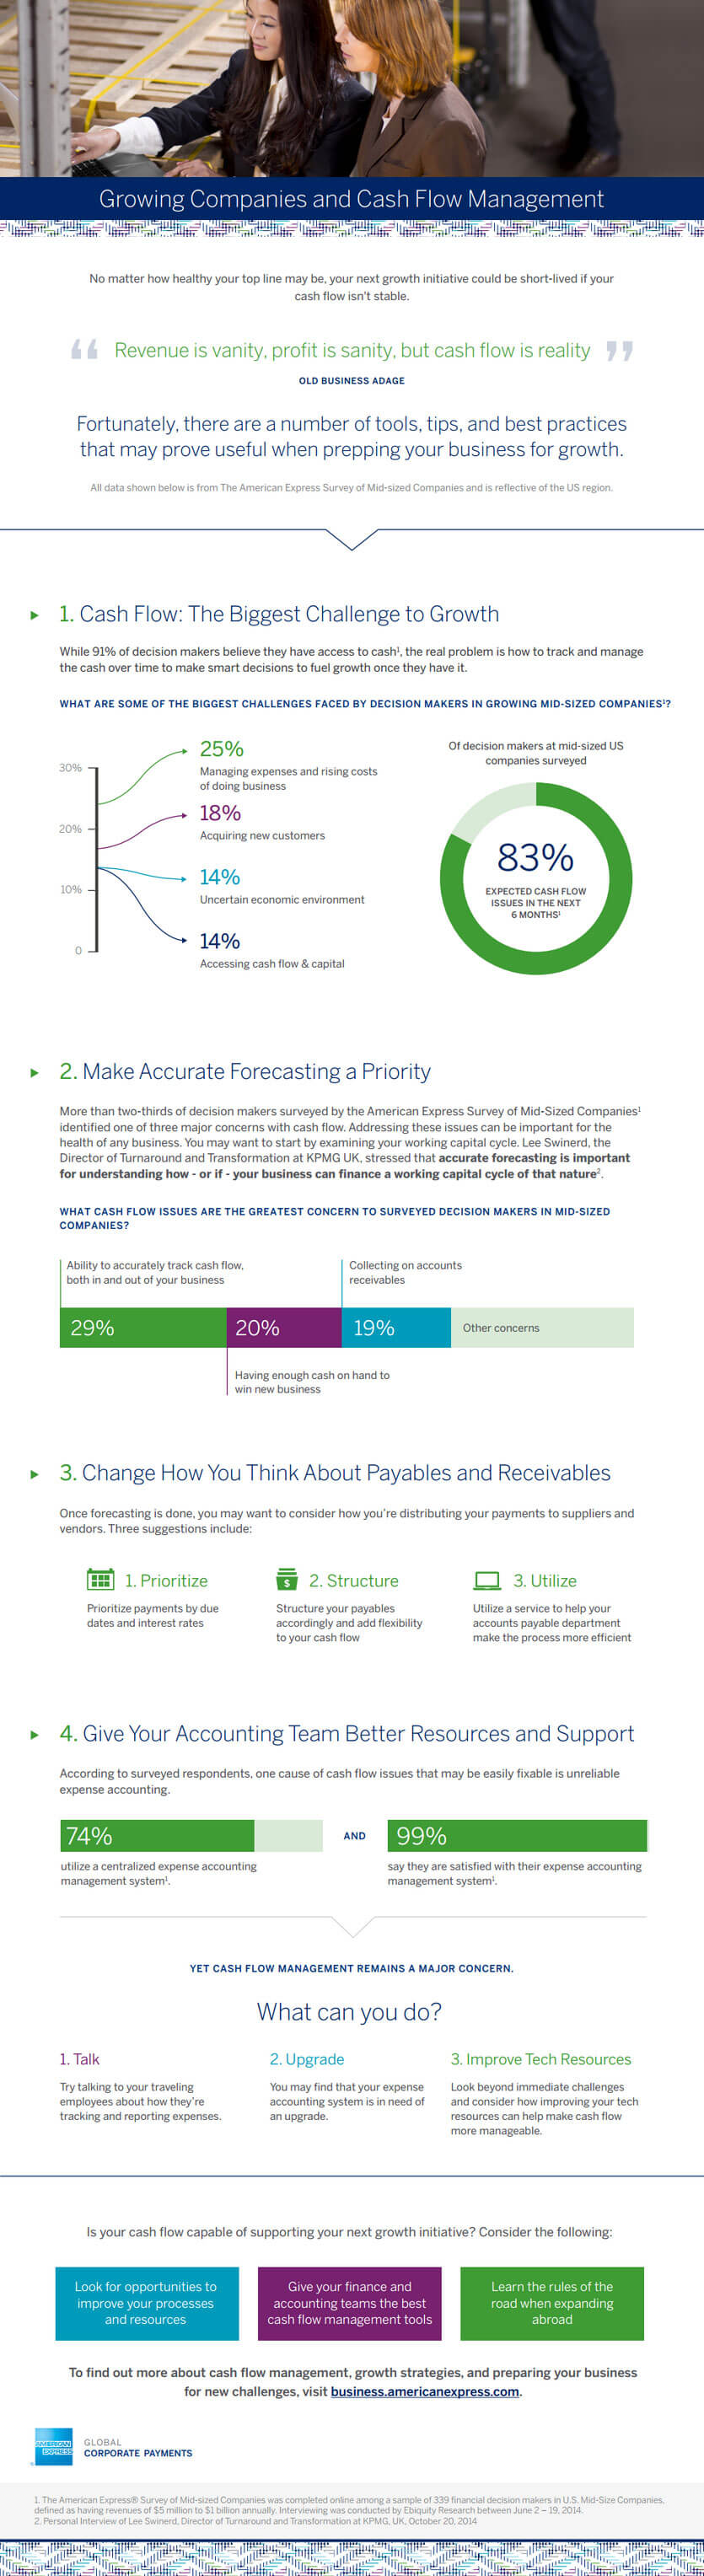 GCP Managing Cash Smart Infographic